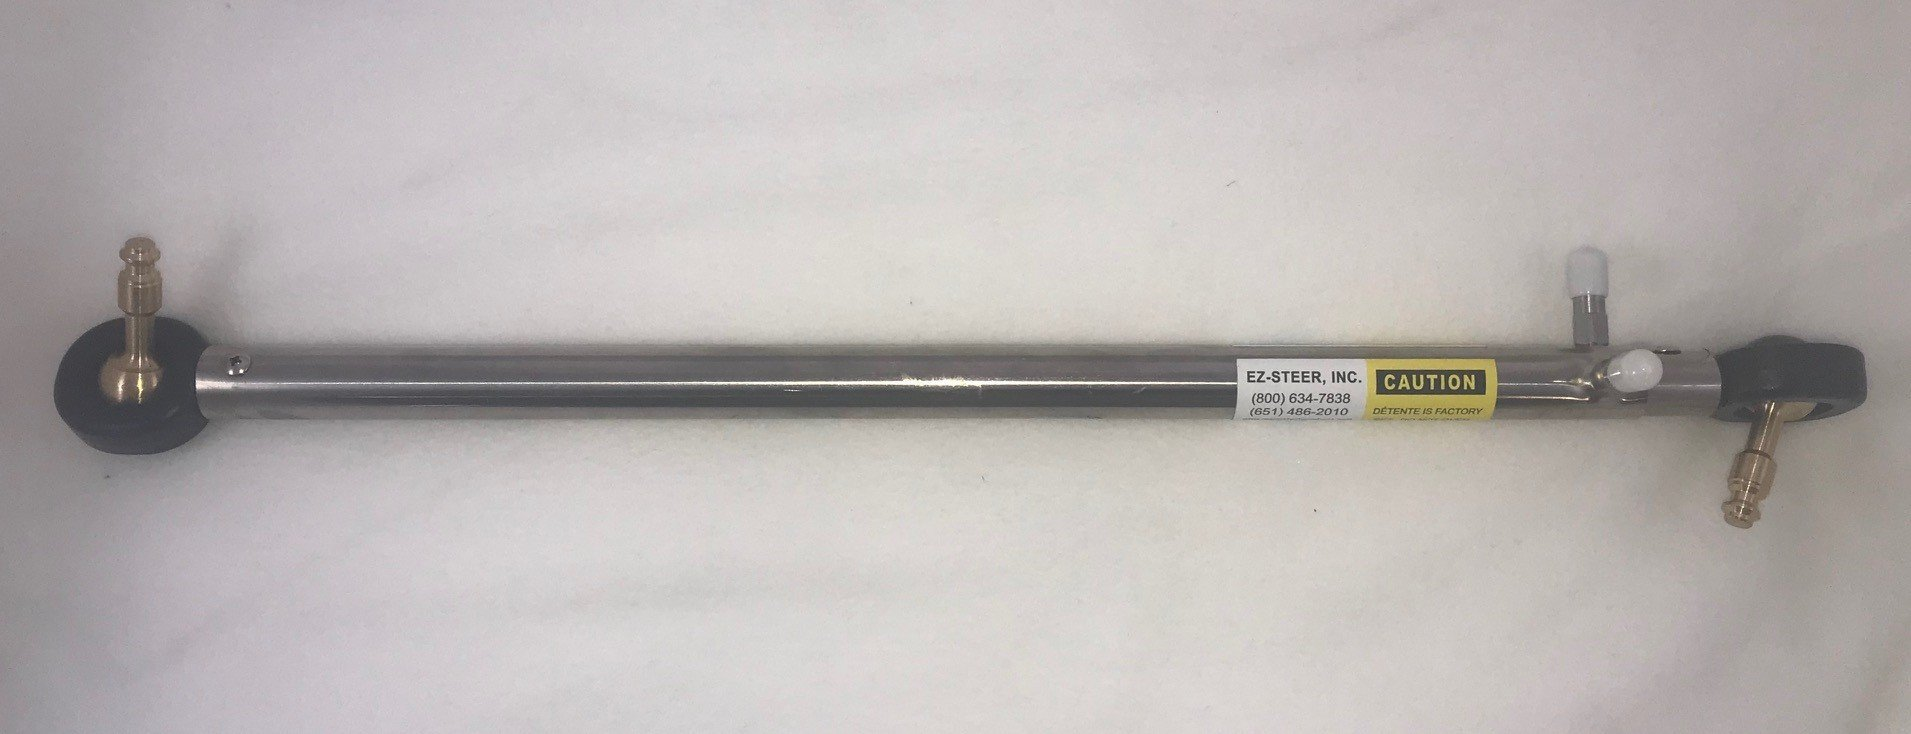 EZ-Steer Complete Rod Assembly - Medium, 27in-28in - shop.cmpgroup.net